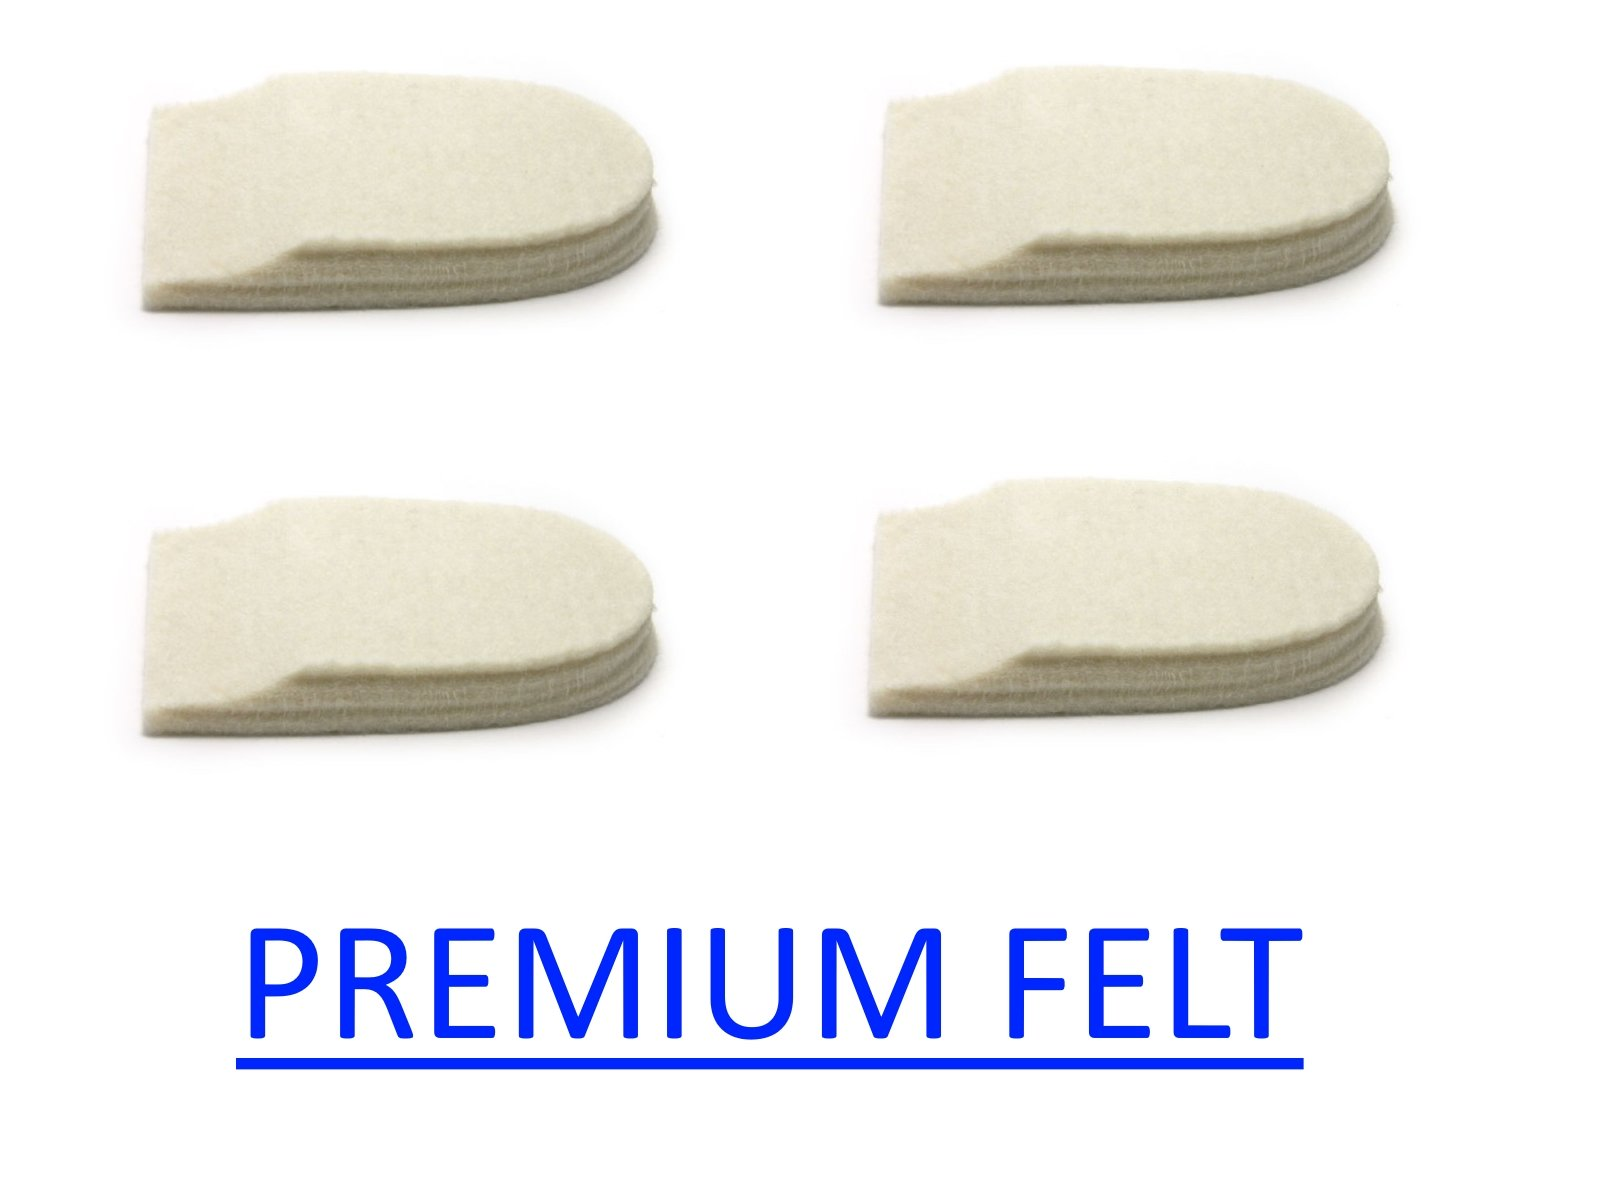 Felt Heel Cushion Pad 1/2'' with Adhesive for Pain Relief - 2 Pairs (4 Pieces)